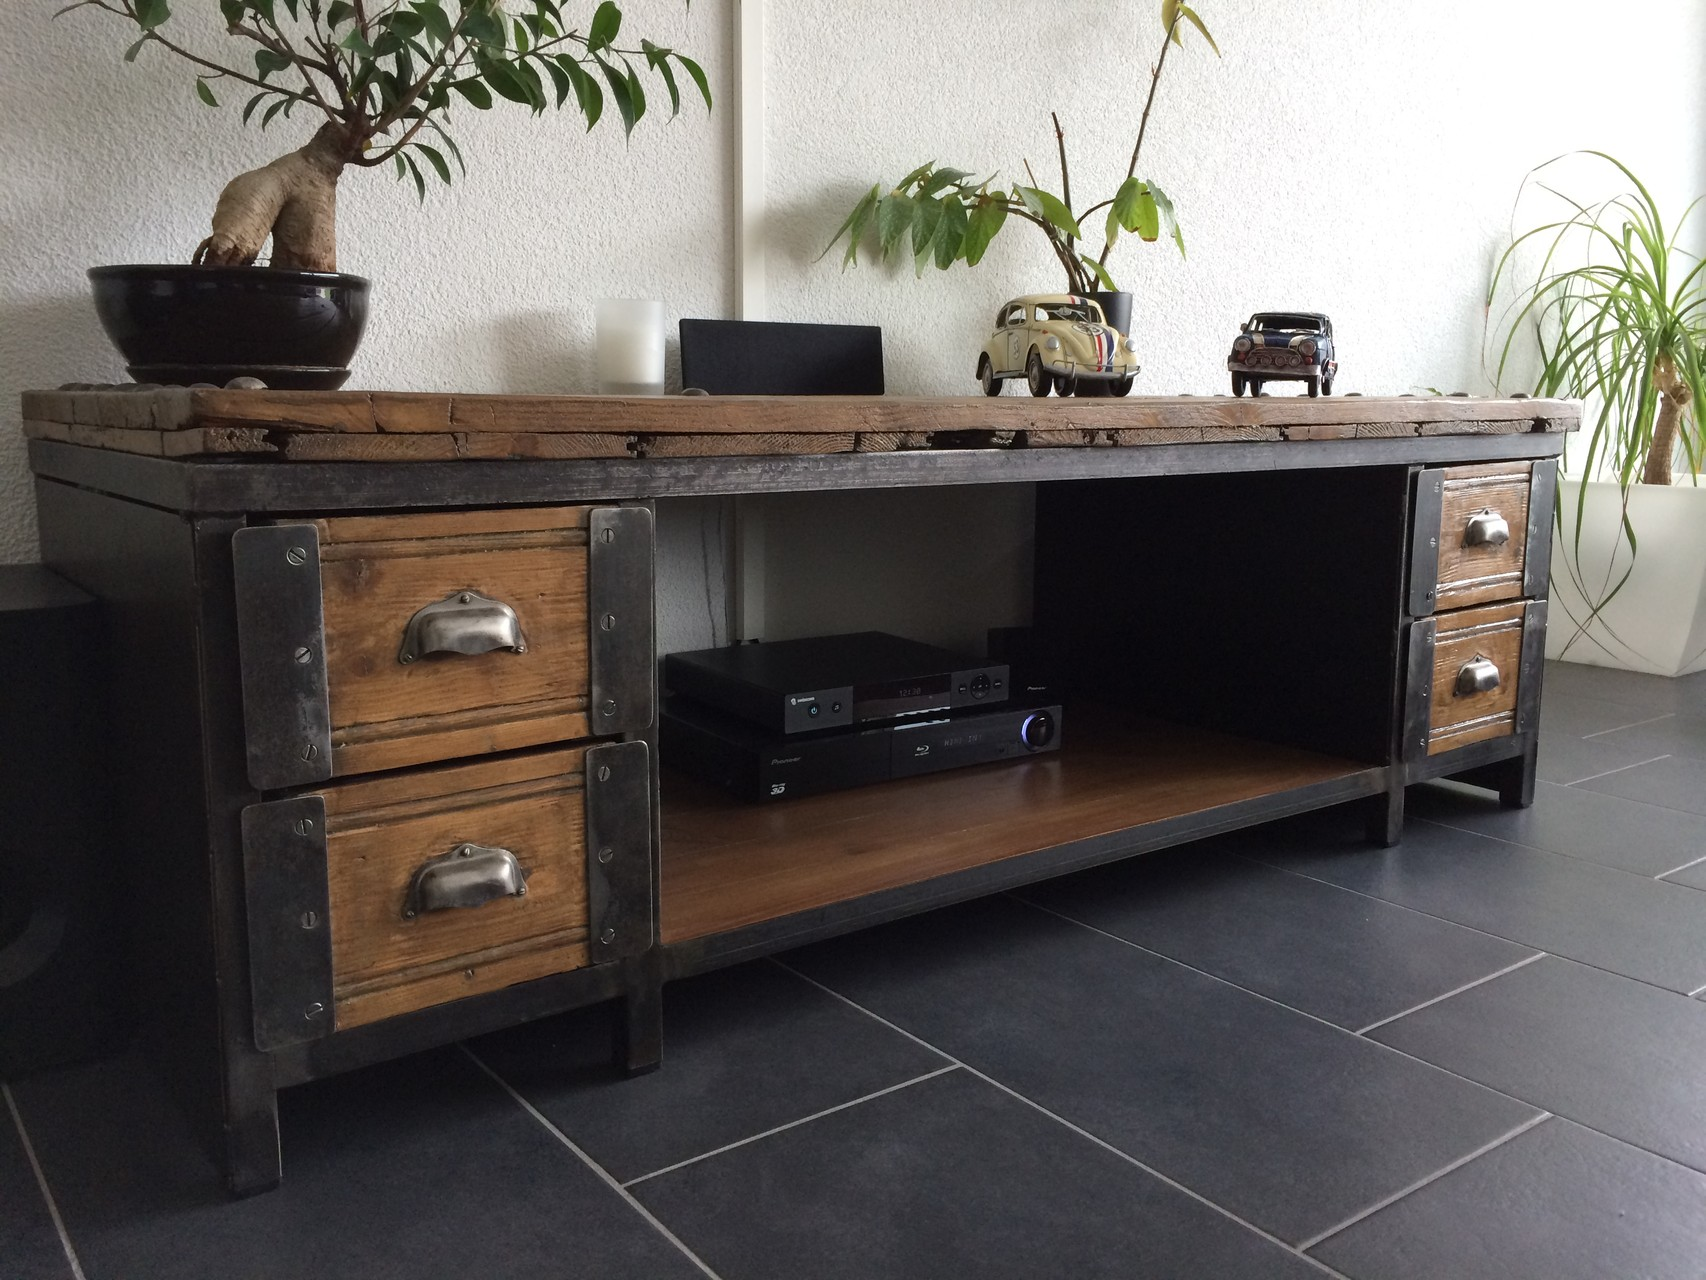 Table Basse Meuble Tv Industriel Atelier Vintage Mobilier  # Meuble Tv Industrielle